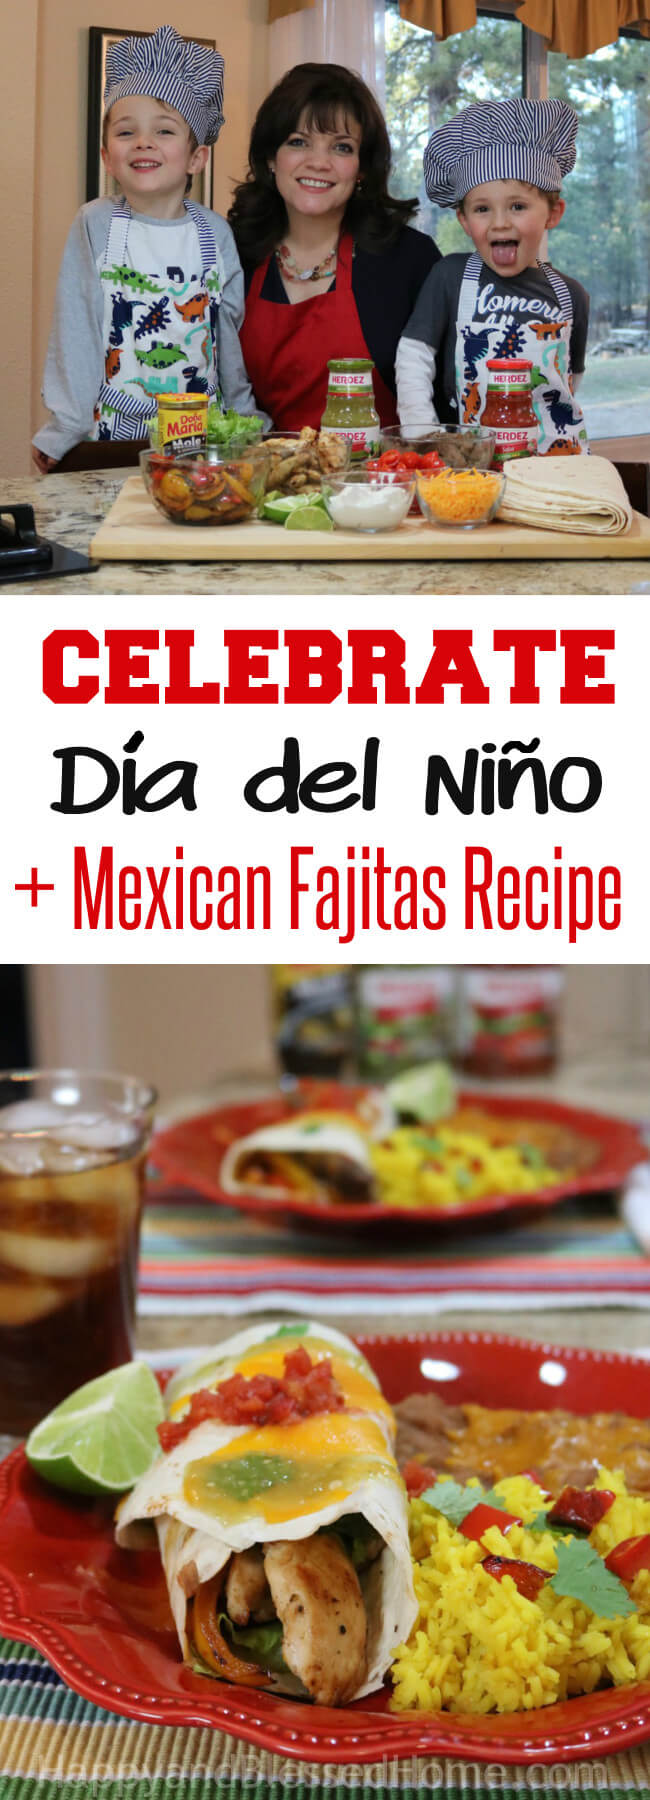 Have fun cooking with Kids with this Easy Mexican Fajitas Recipe and celebrate Día del Niño